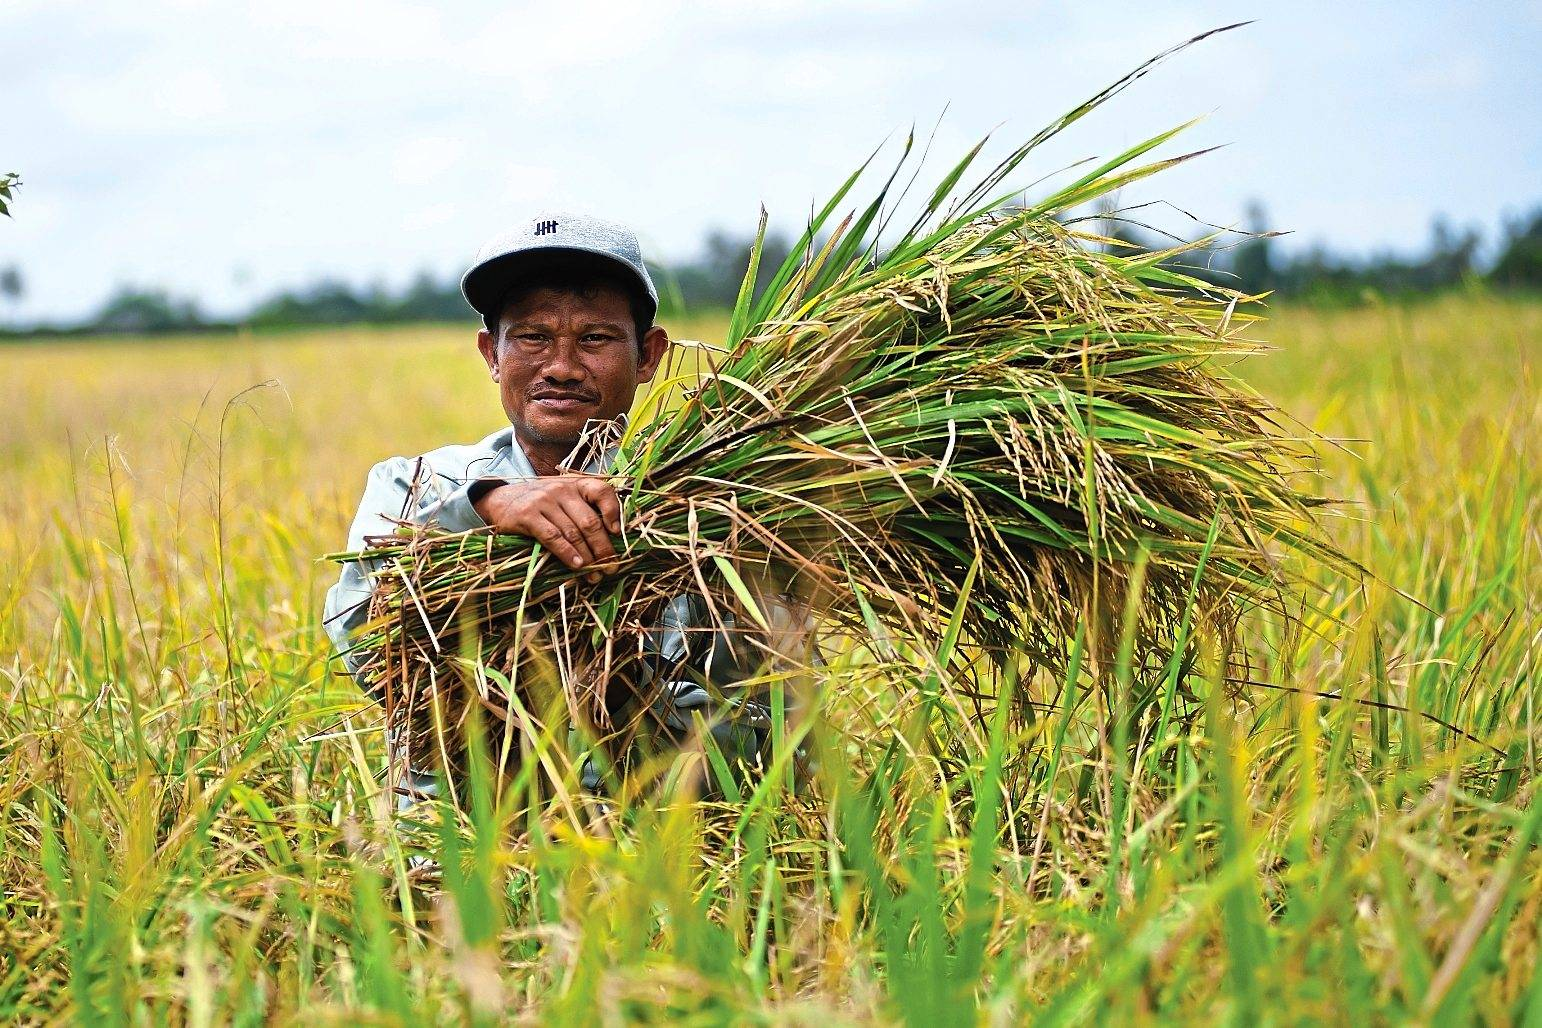 Sustainable income: Established in 2012, the Nestle Paddy Club provides rice farmers in Kedah with sustainable income opportunities. The scheme has an average participation of 260 farmers in 2018, producing yield of 5.5 tonnes per hectare.